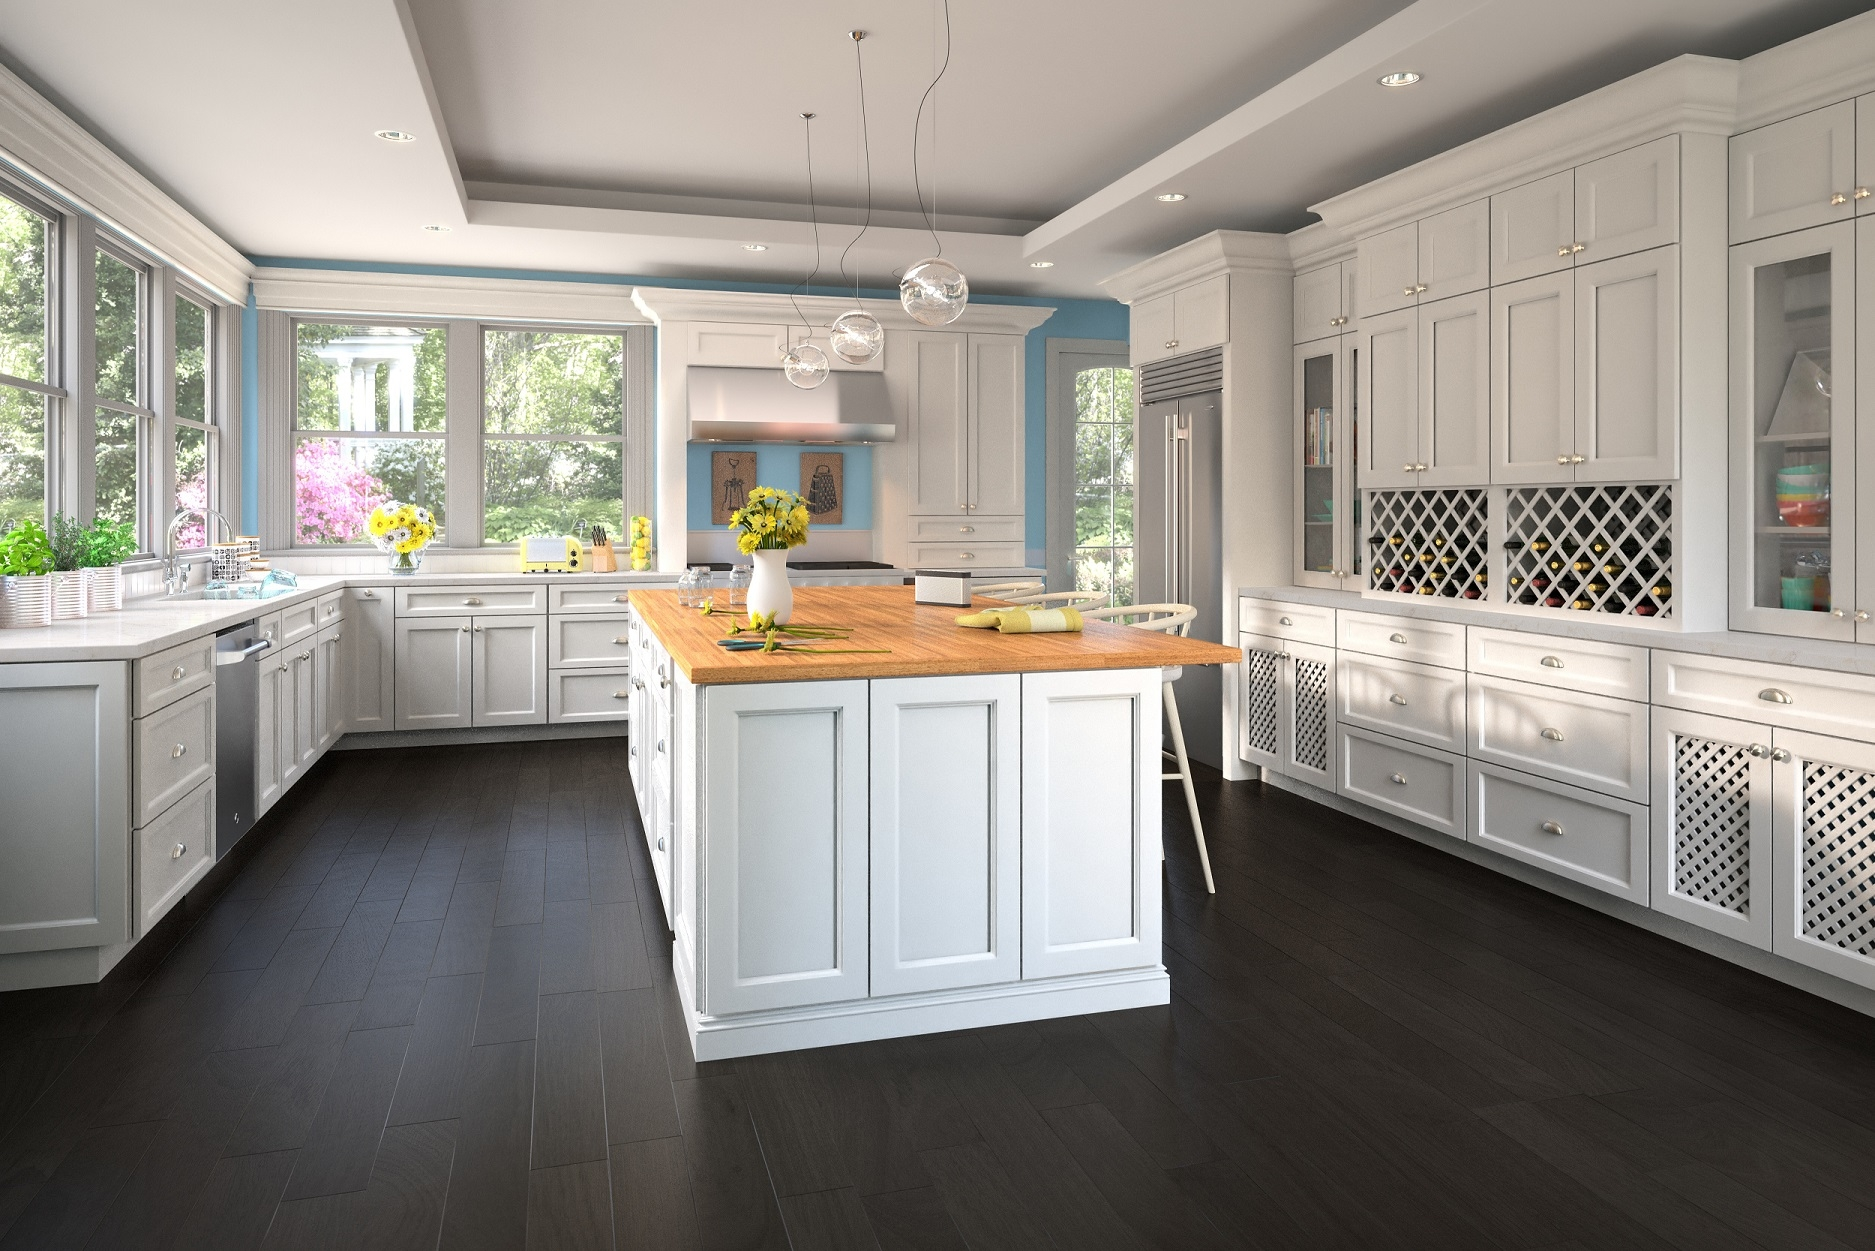 Assemble Kitchen Cabinets The Basics